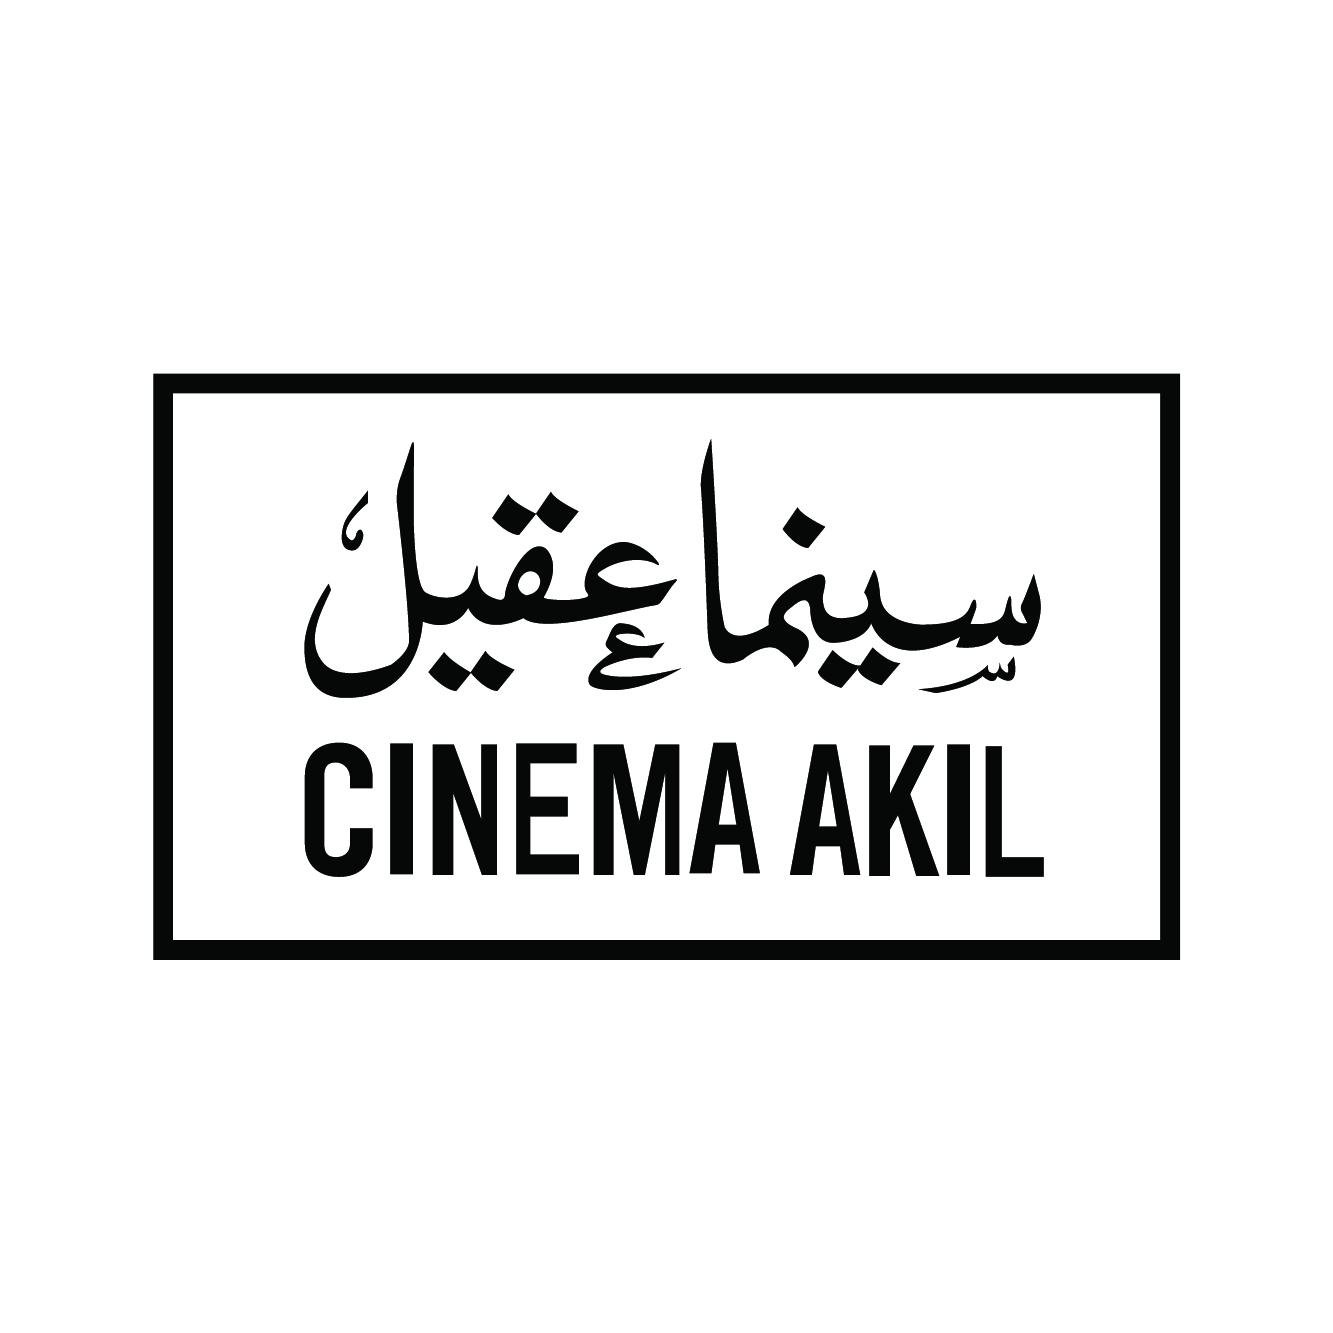 La Pointe Courte at Cinema Akil on Nov 16th Dubai 2019